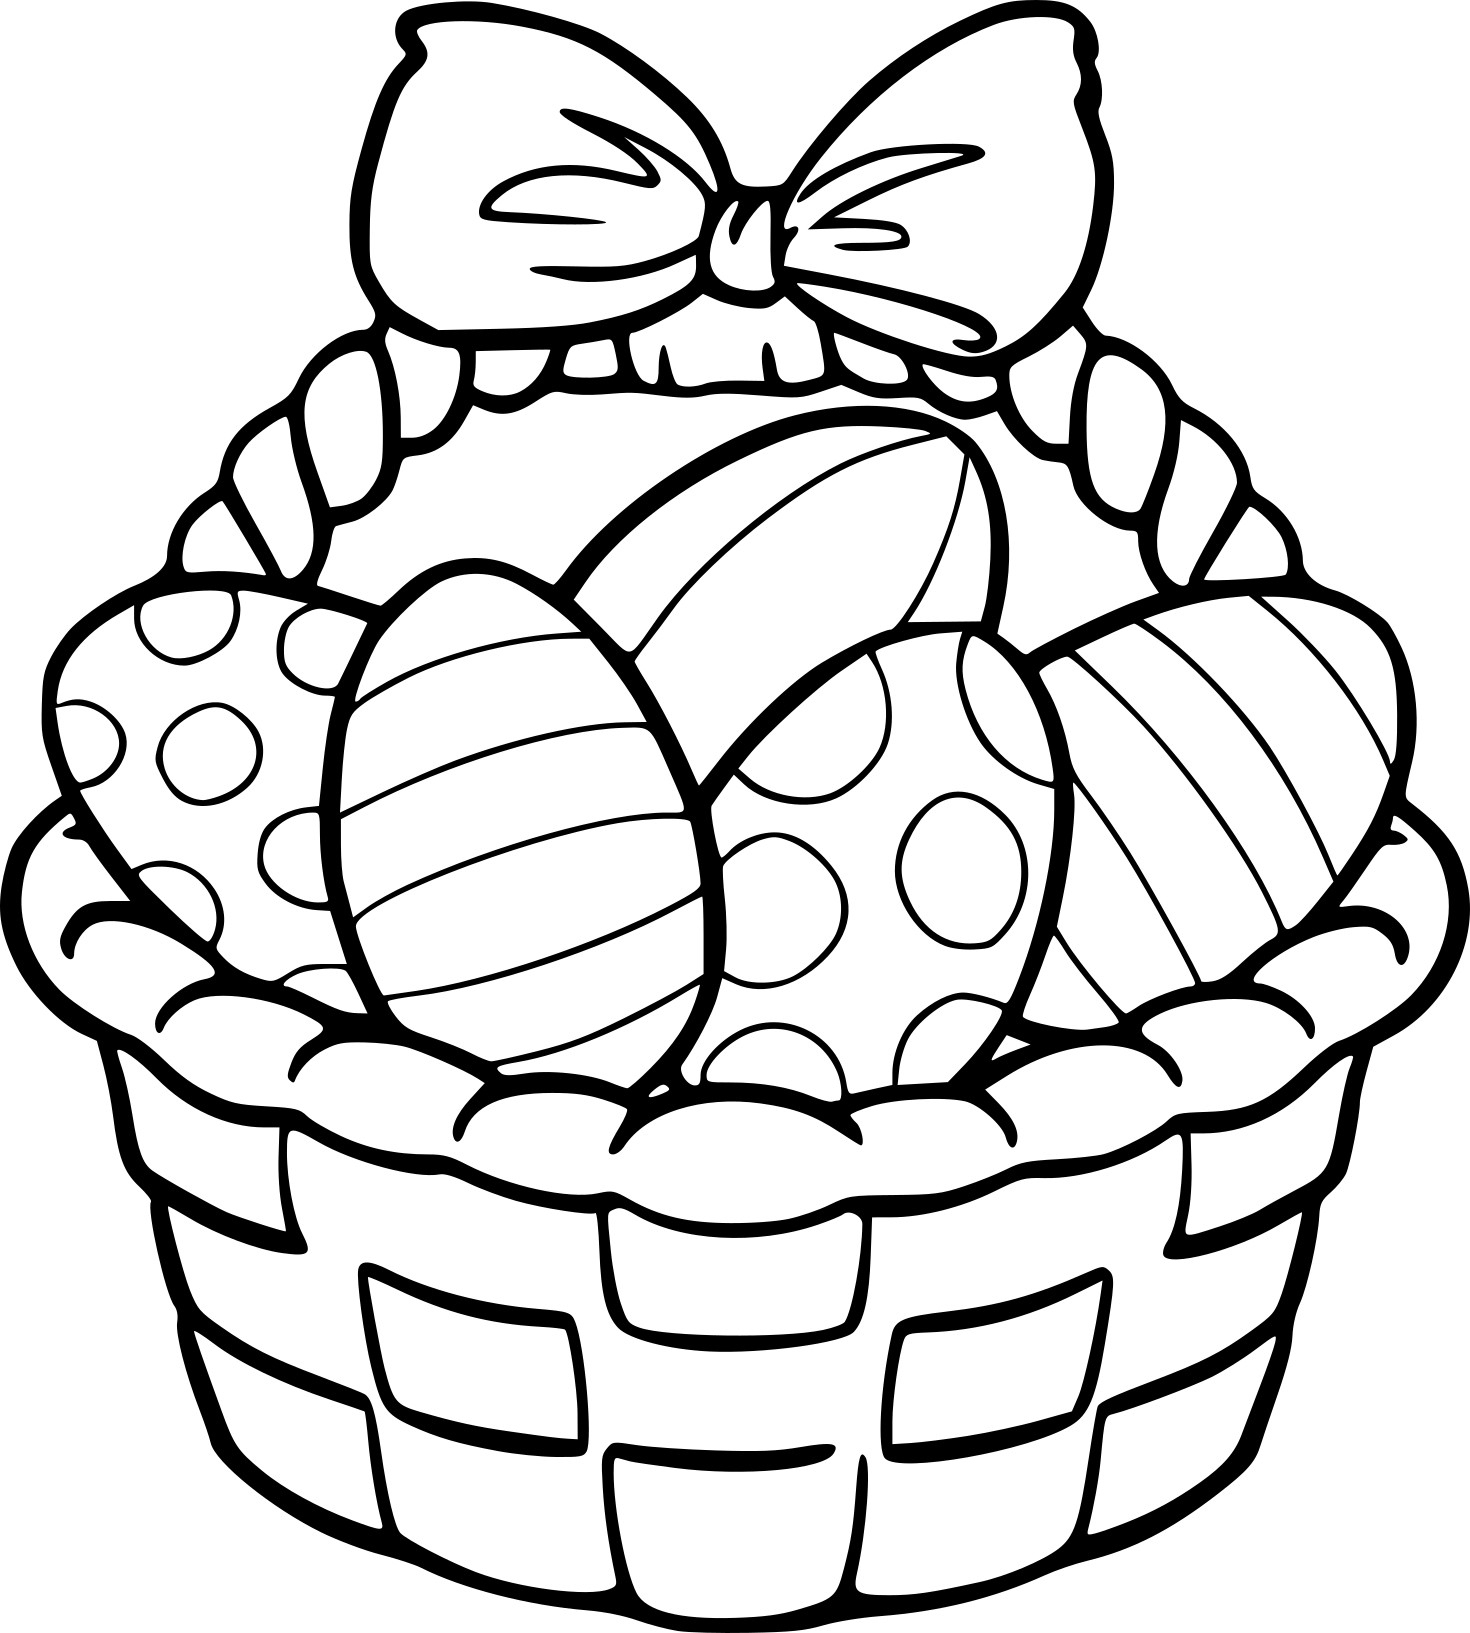 Luxe Dessin Coloriage Oeuf De Paques – Mademoiselleosaki avec Coloriage Oeuf De Paques À Imprimer